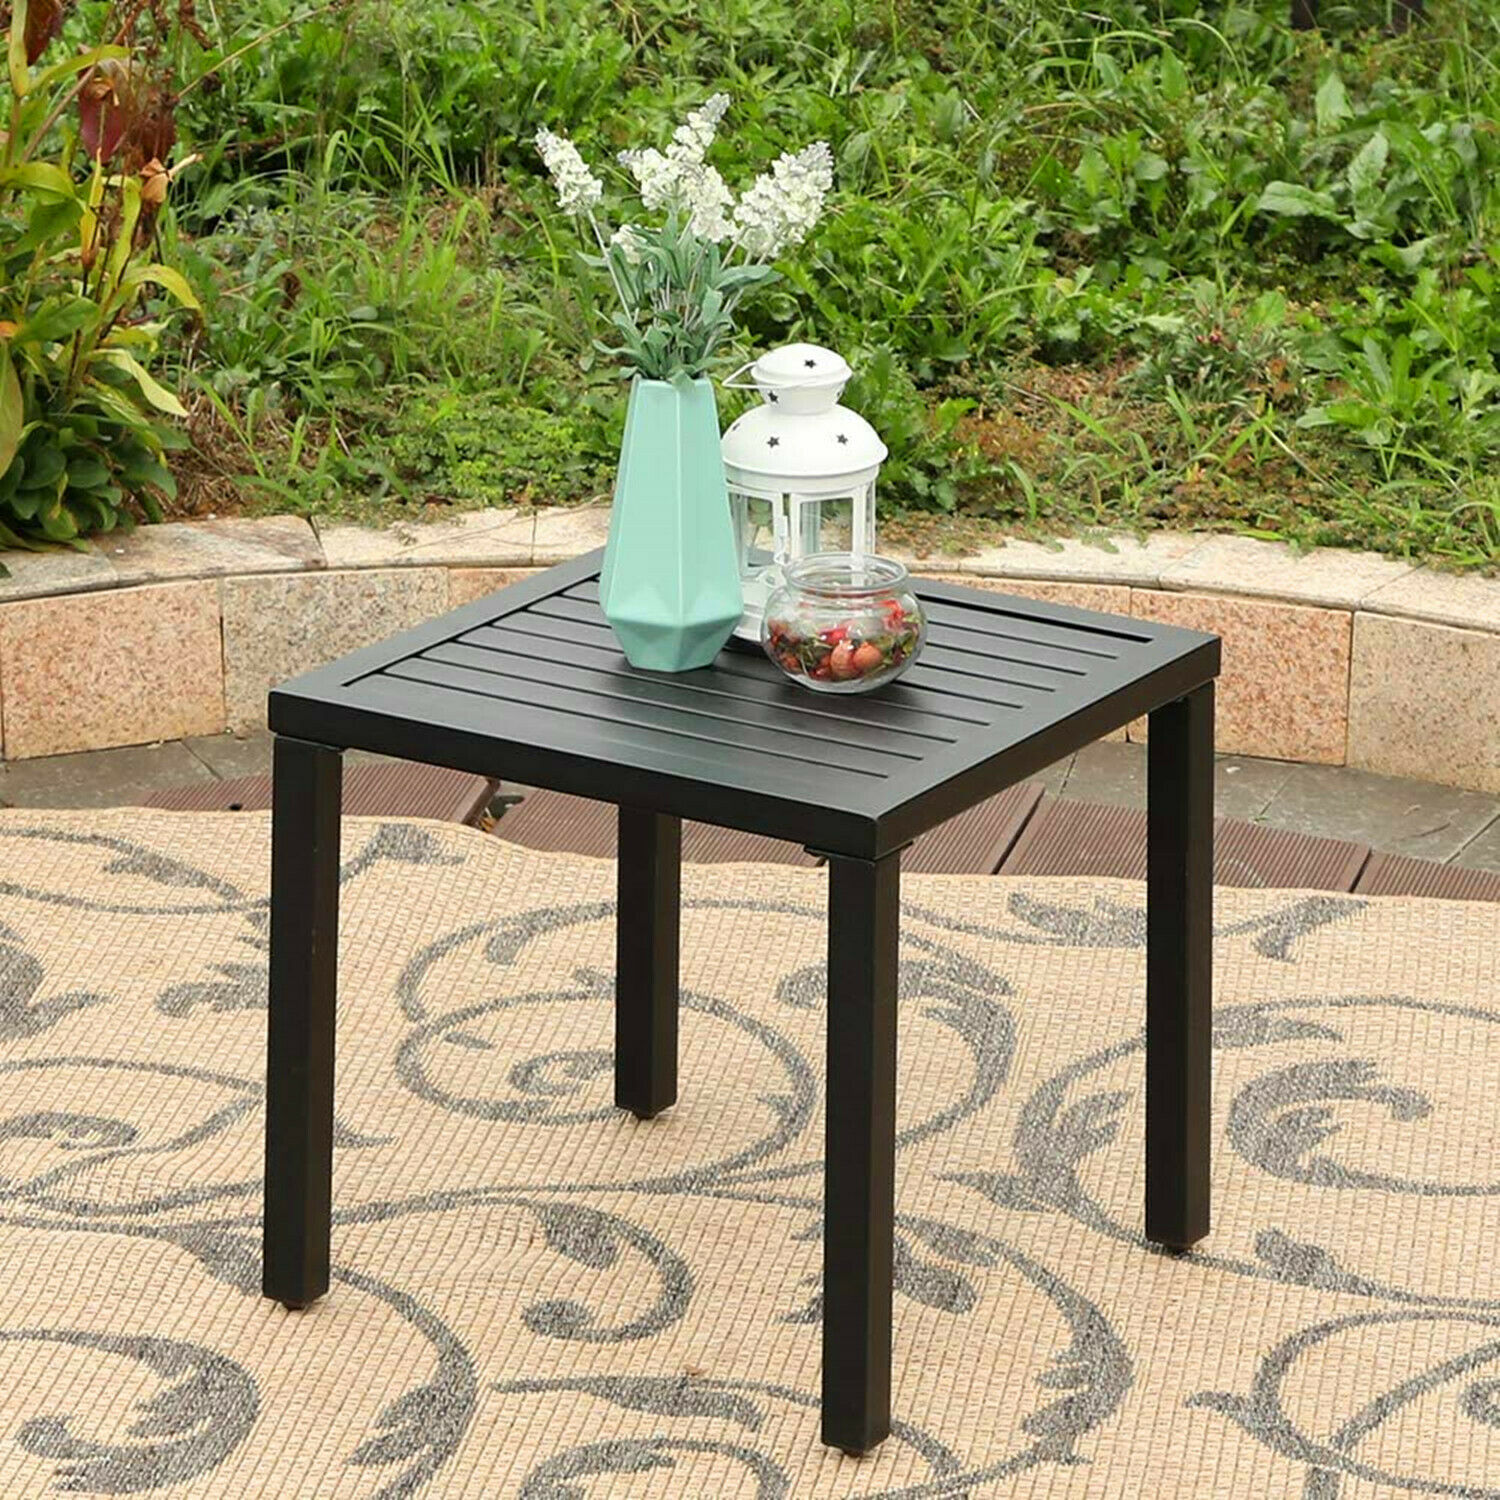 Side End Table Metal Patio Coffee Tables Square Black Indoor Outdoor Furniture